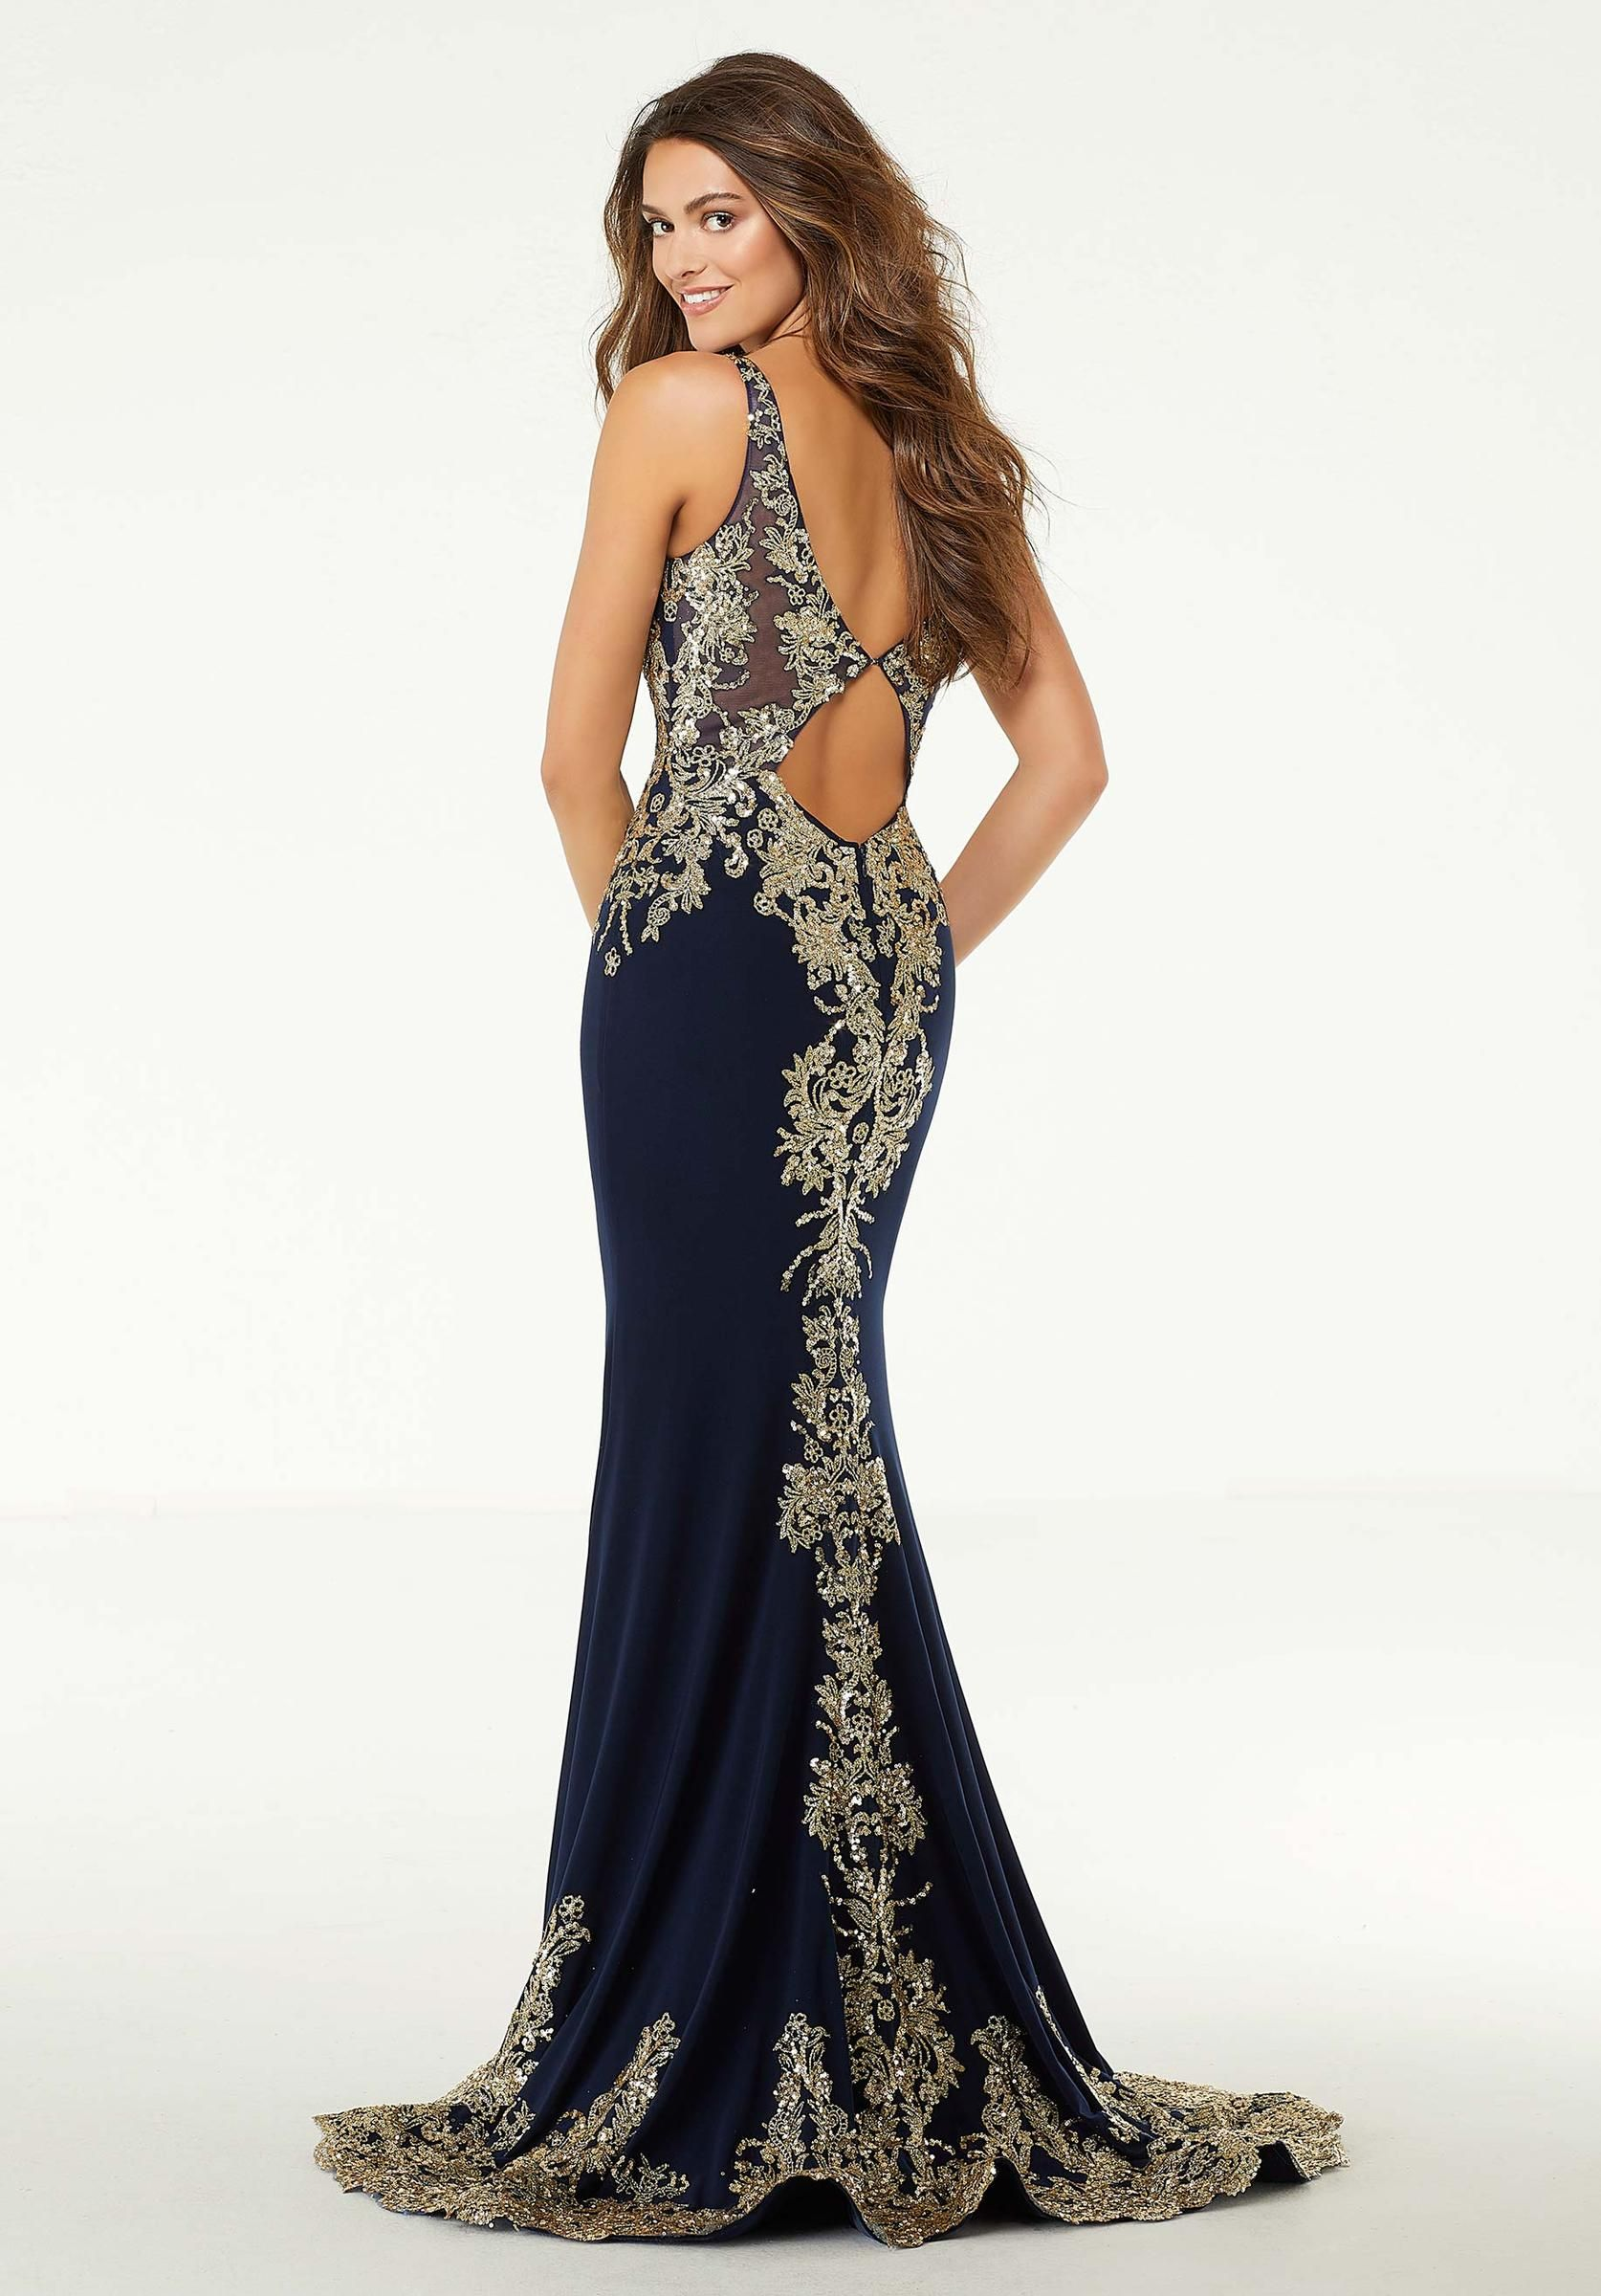 Sultry gown with sequins and glitter